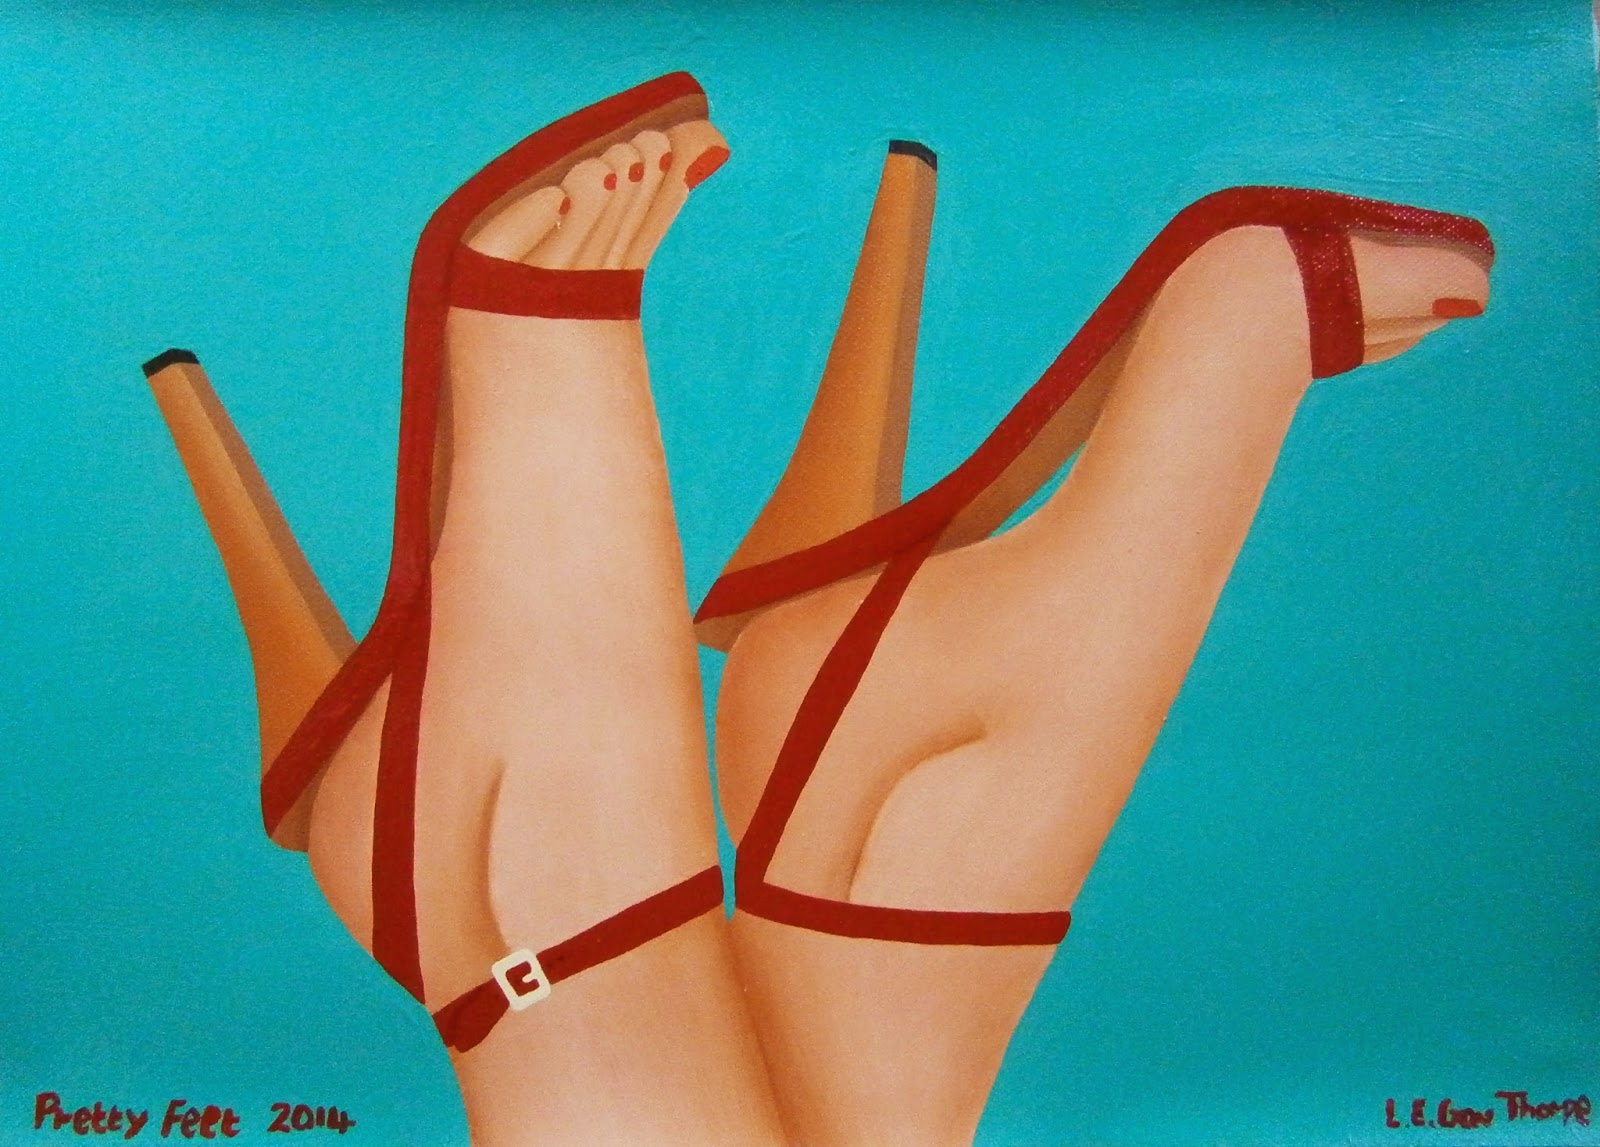 The feet of a woman wearing red high heel sandals